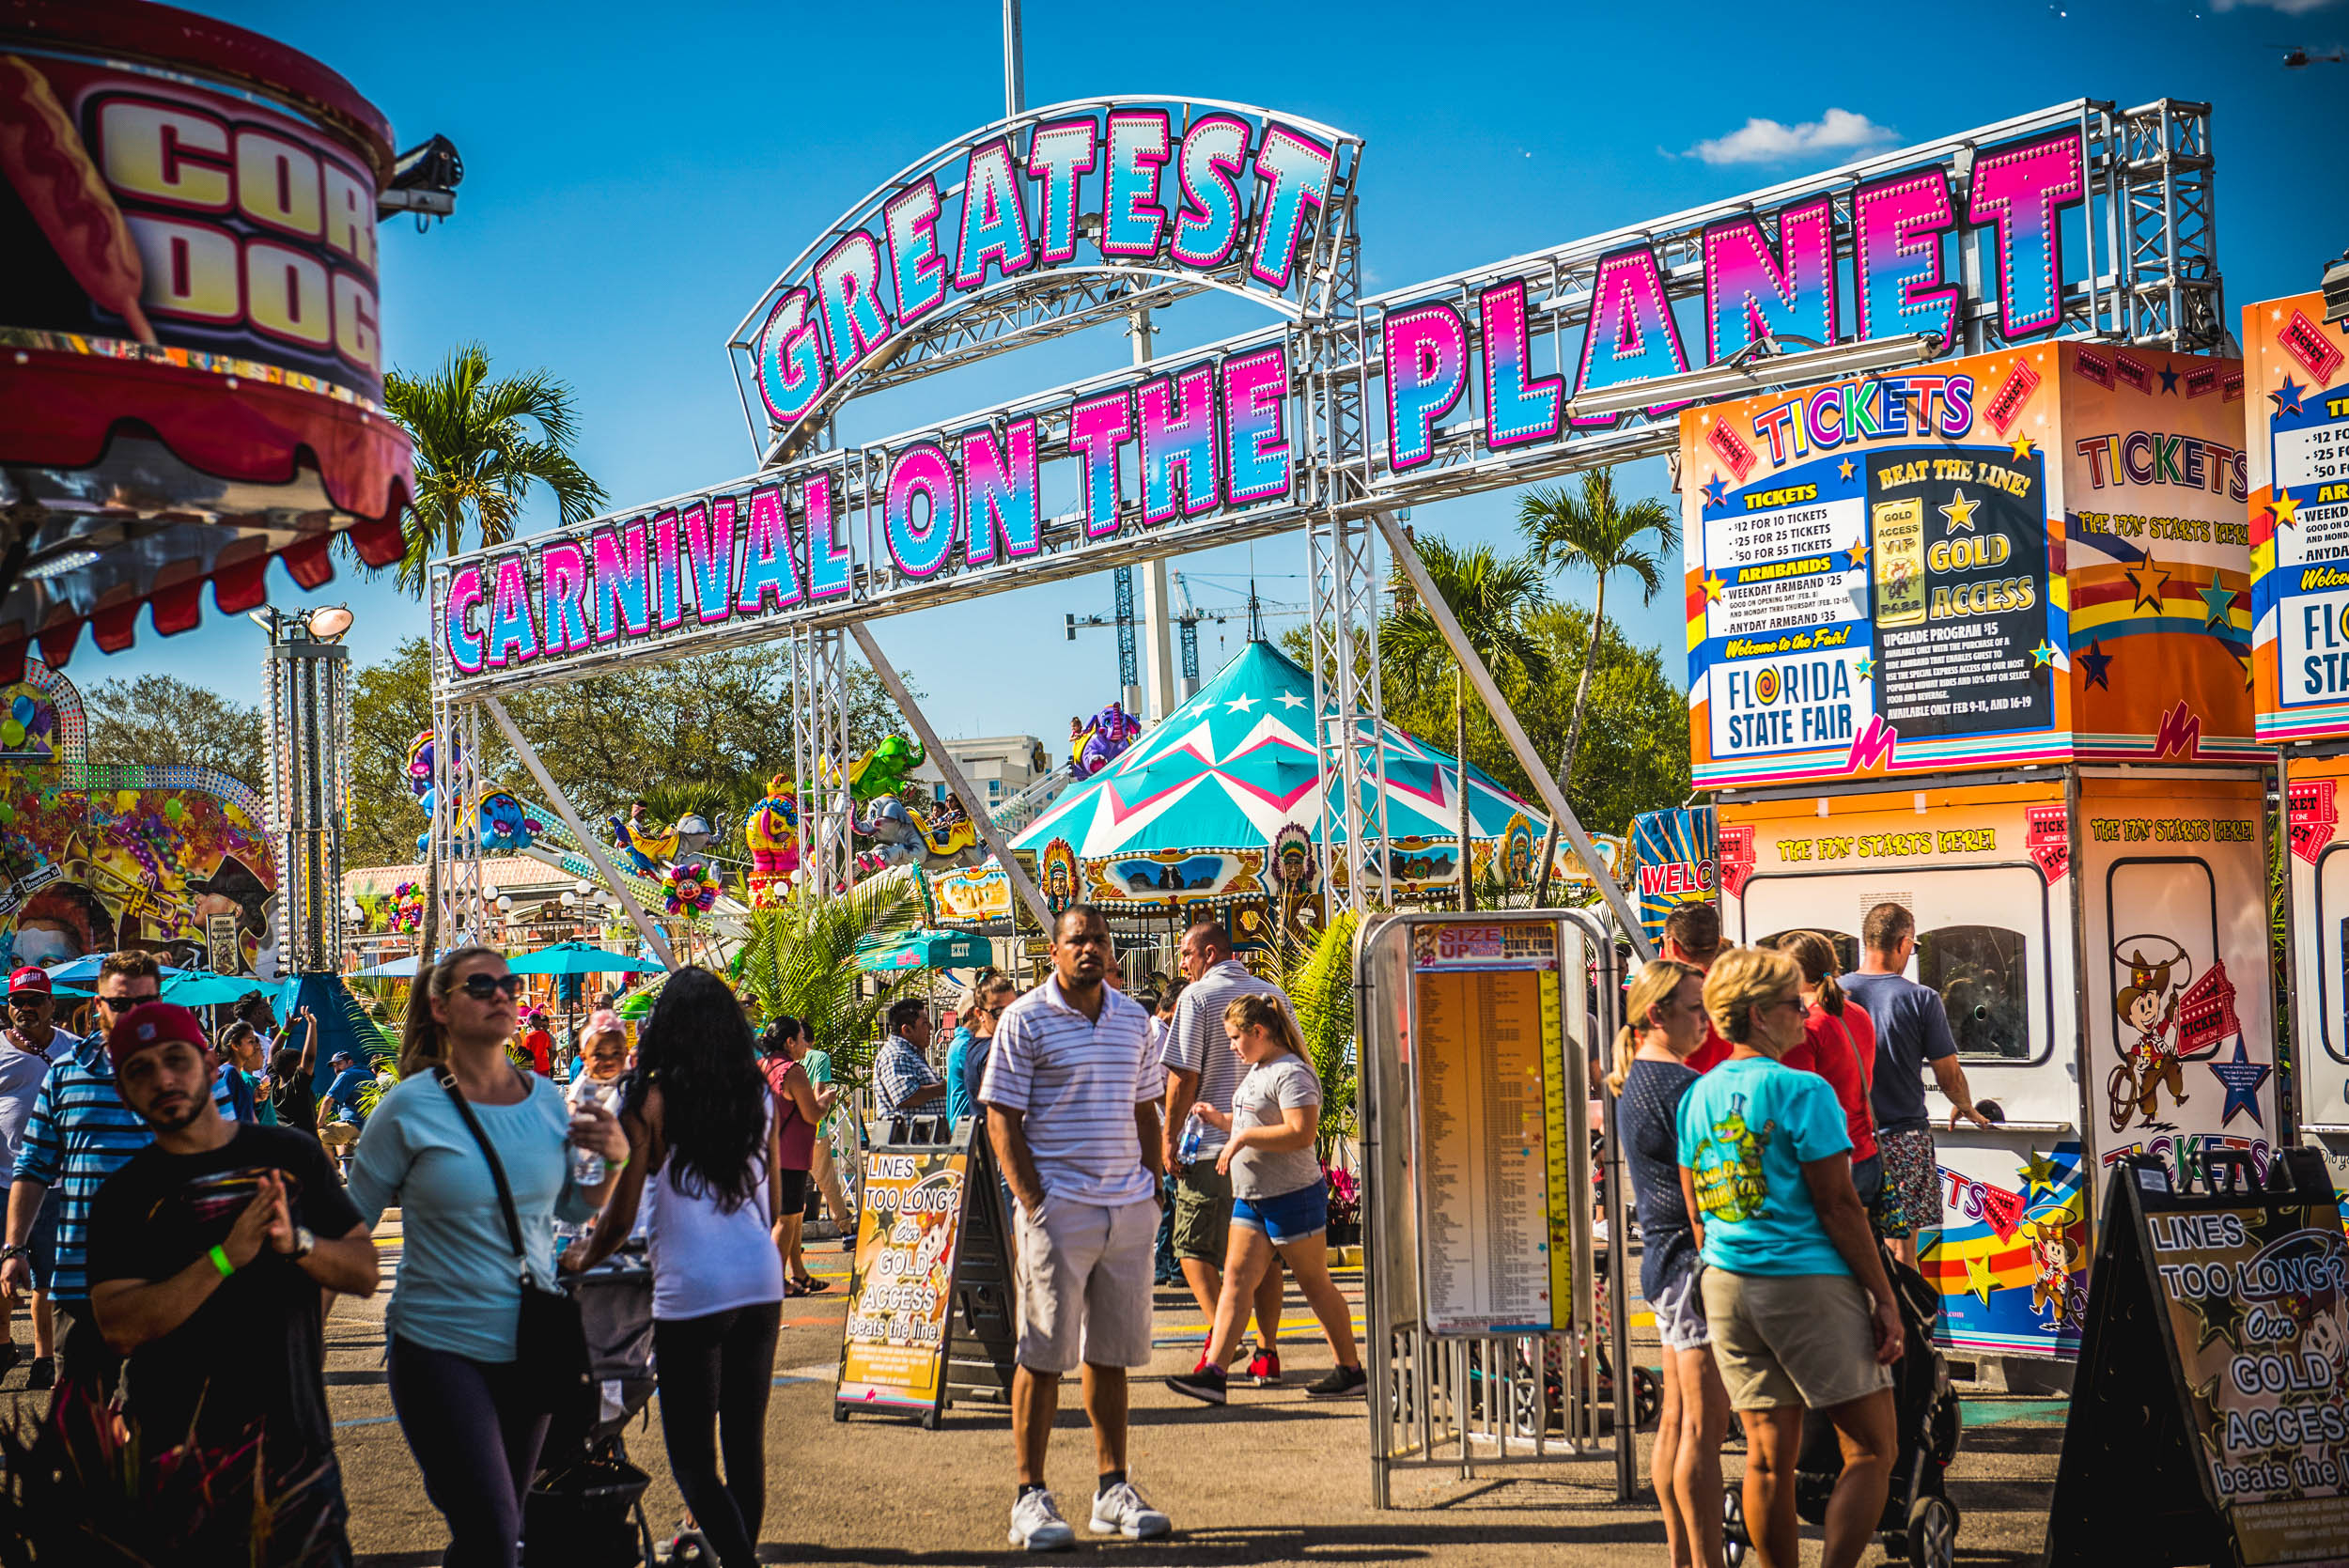 Vendors – Florida State Fair Throughout South Florida Fairgrounds Events 2021